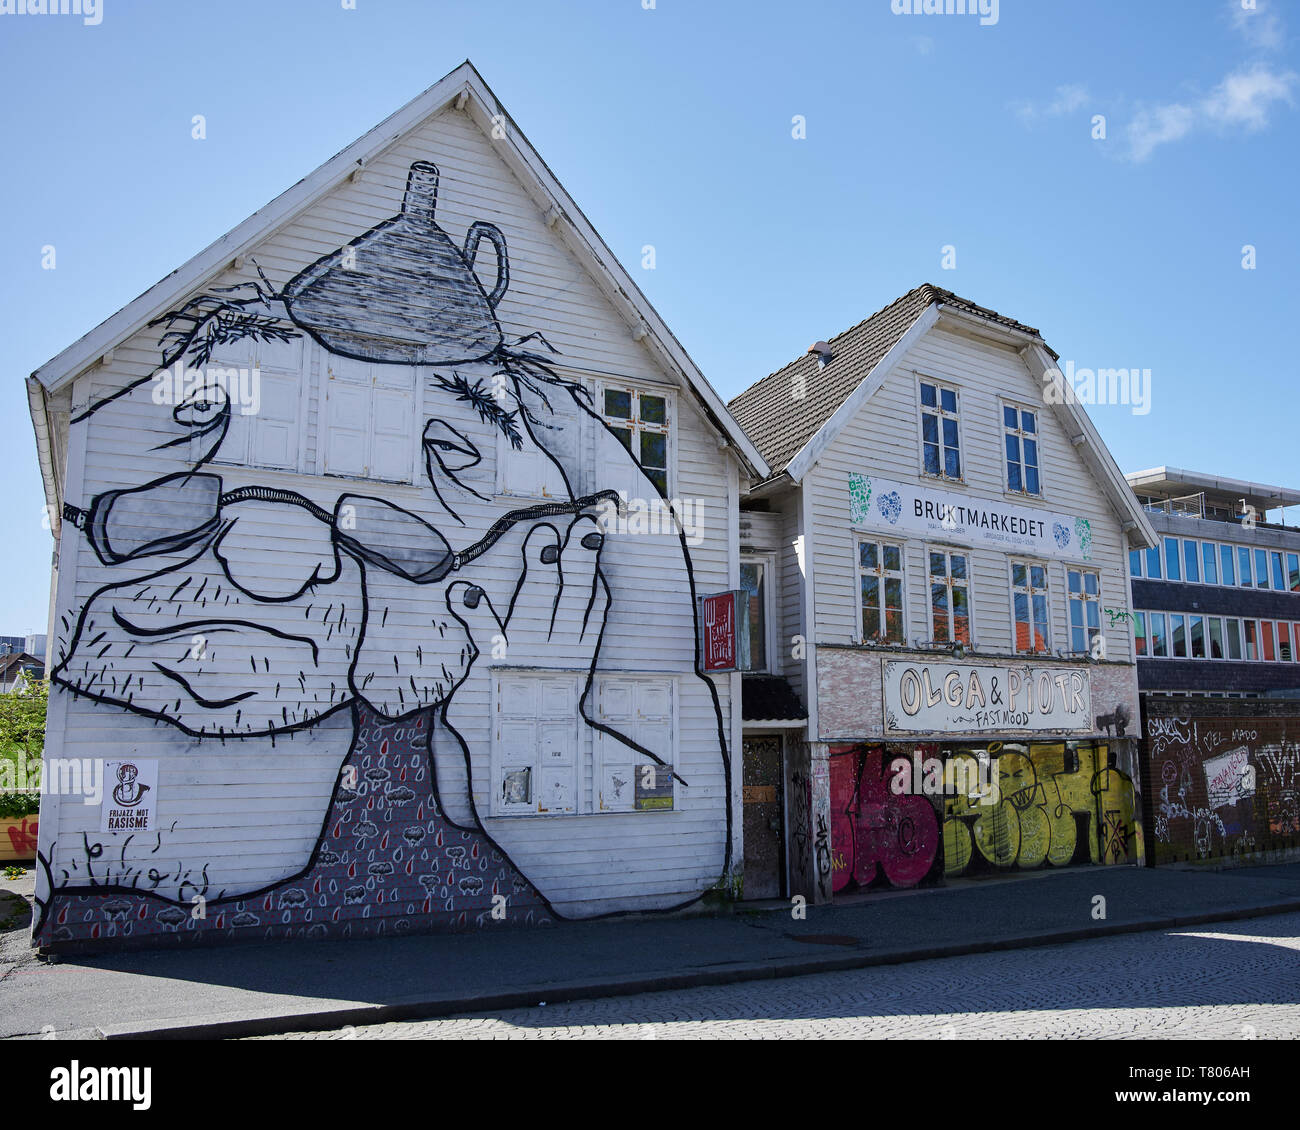 A wonderful way to discover the city of Stavanger, as you hunt down urban art in the most unlikely places. Stock Photo